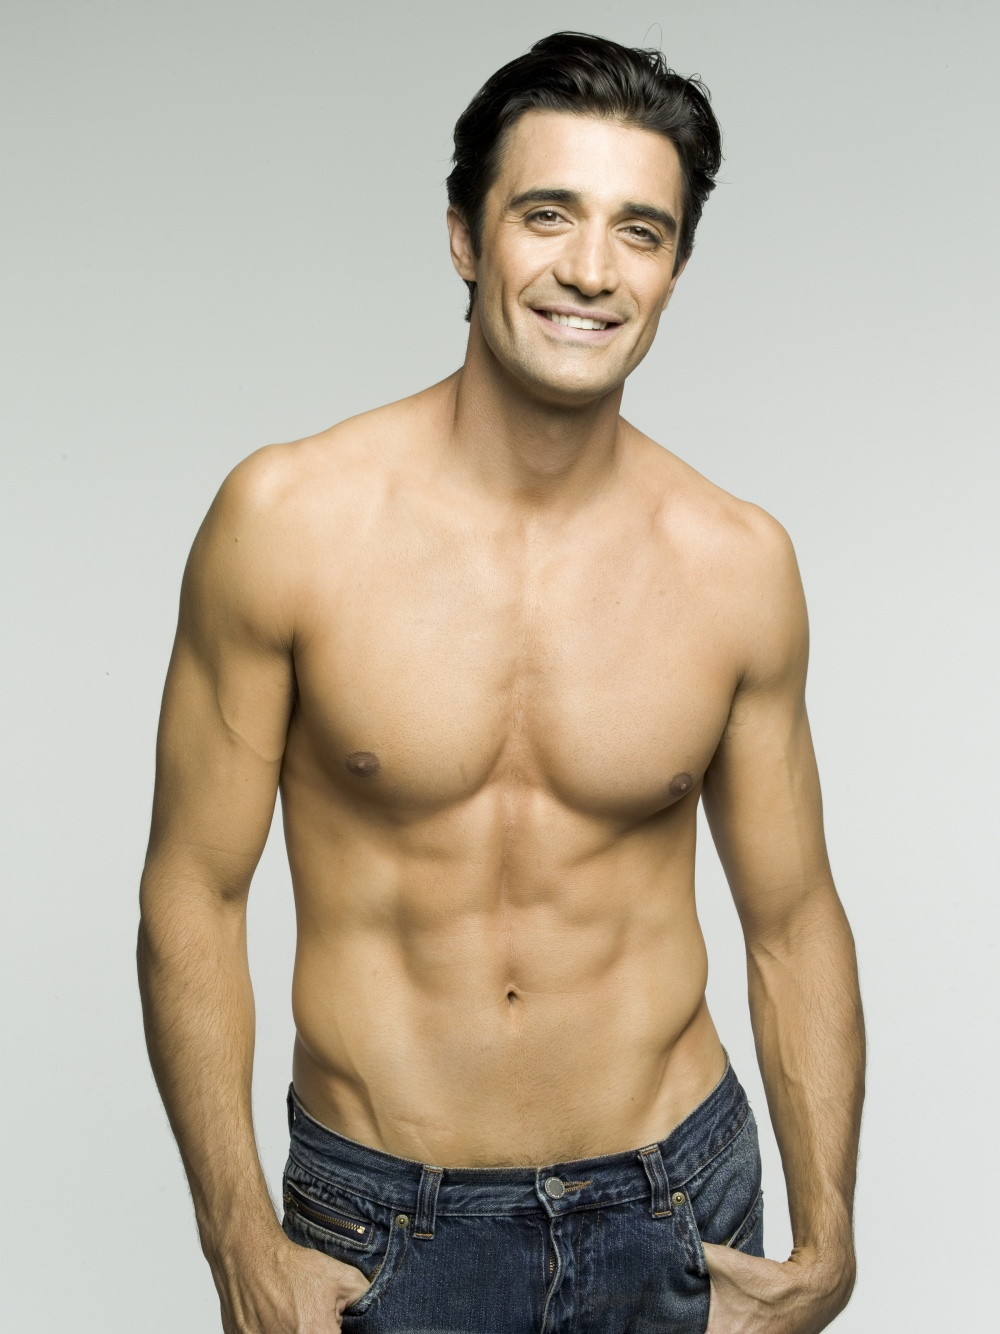 gilles marini instagramgilles marini 2017, gilles marini instagram, gilles marini 2016, gilles marini, gilles marini dancing with the stars, gilles marini imdb, gilles marini twitter, gilles marini son, gilles marini facebook, gilles marini criminal minds, gilles marini wife, gilles marini shower scene, gilles marini devious maids, gilles marini net worth